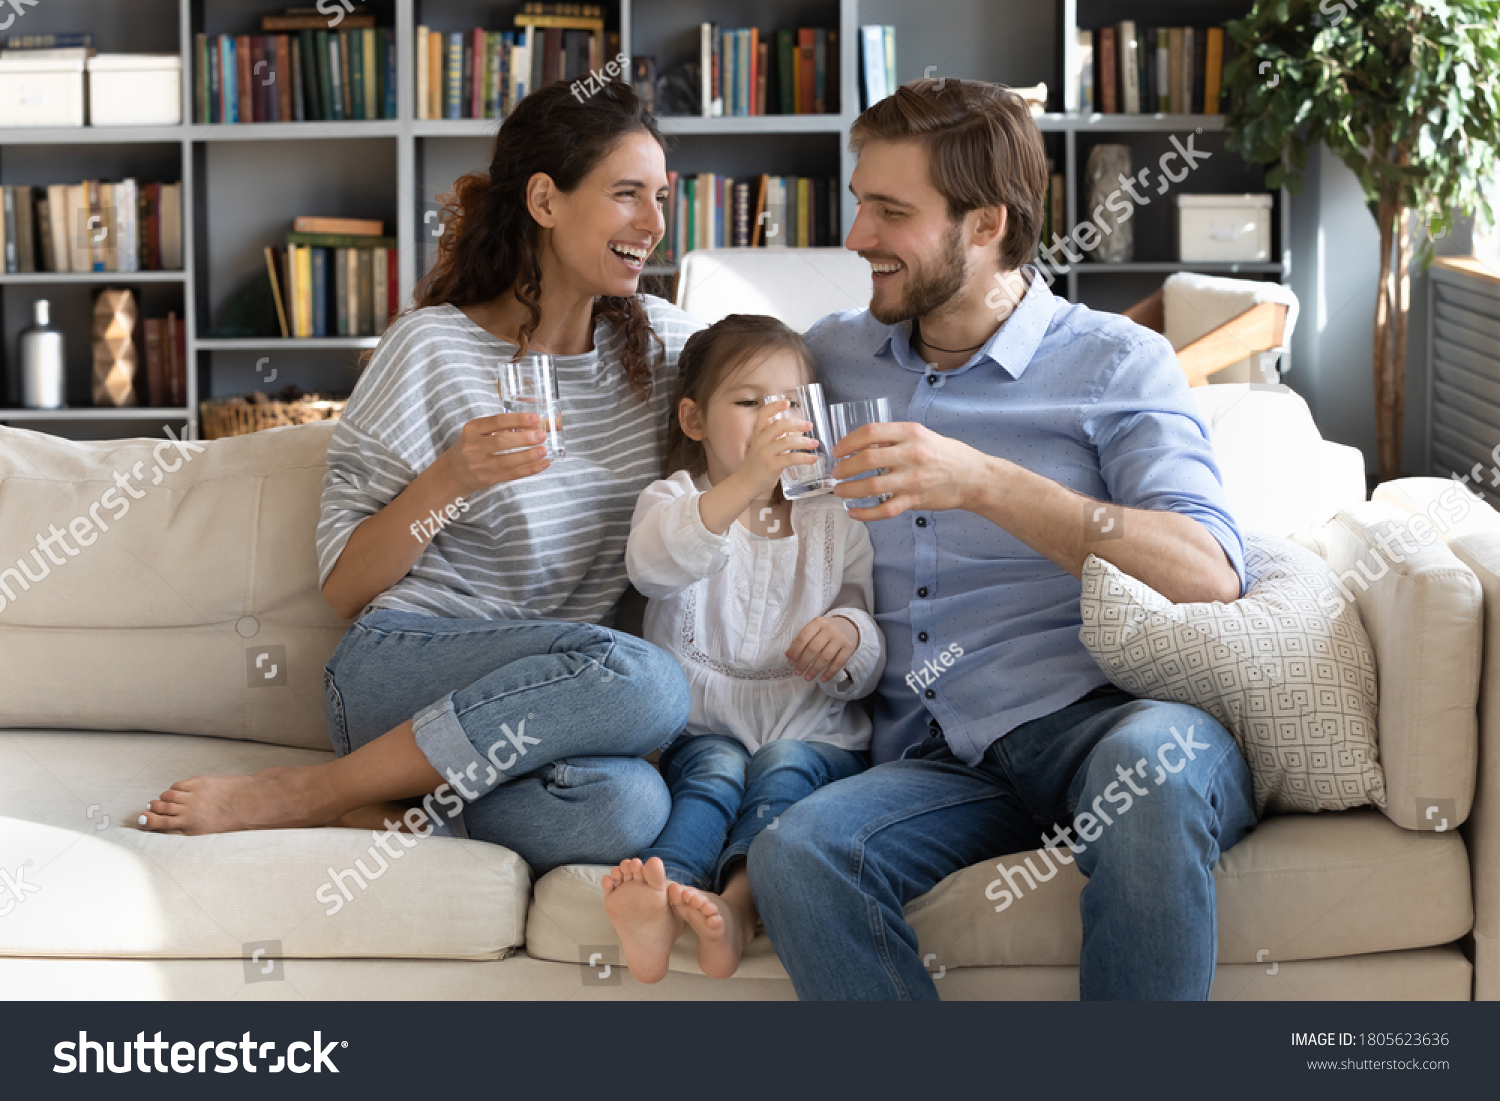 Happy young couple parents teaching little preschool daughter drinking clear water every day. Smiling healthy family holding glasses with pure aqua, enjoying morning daily healthcare habit at home. #1805623636